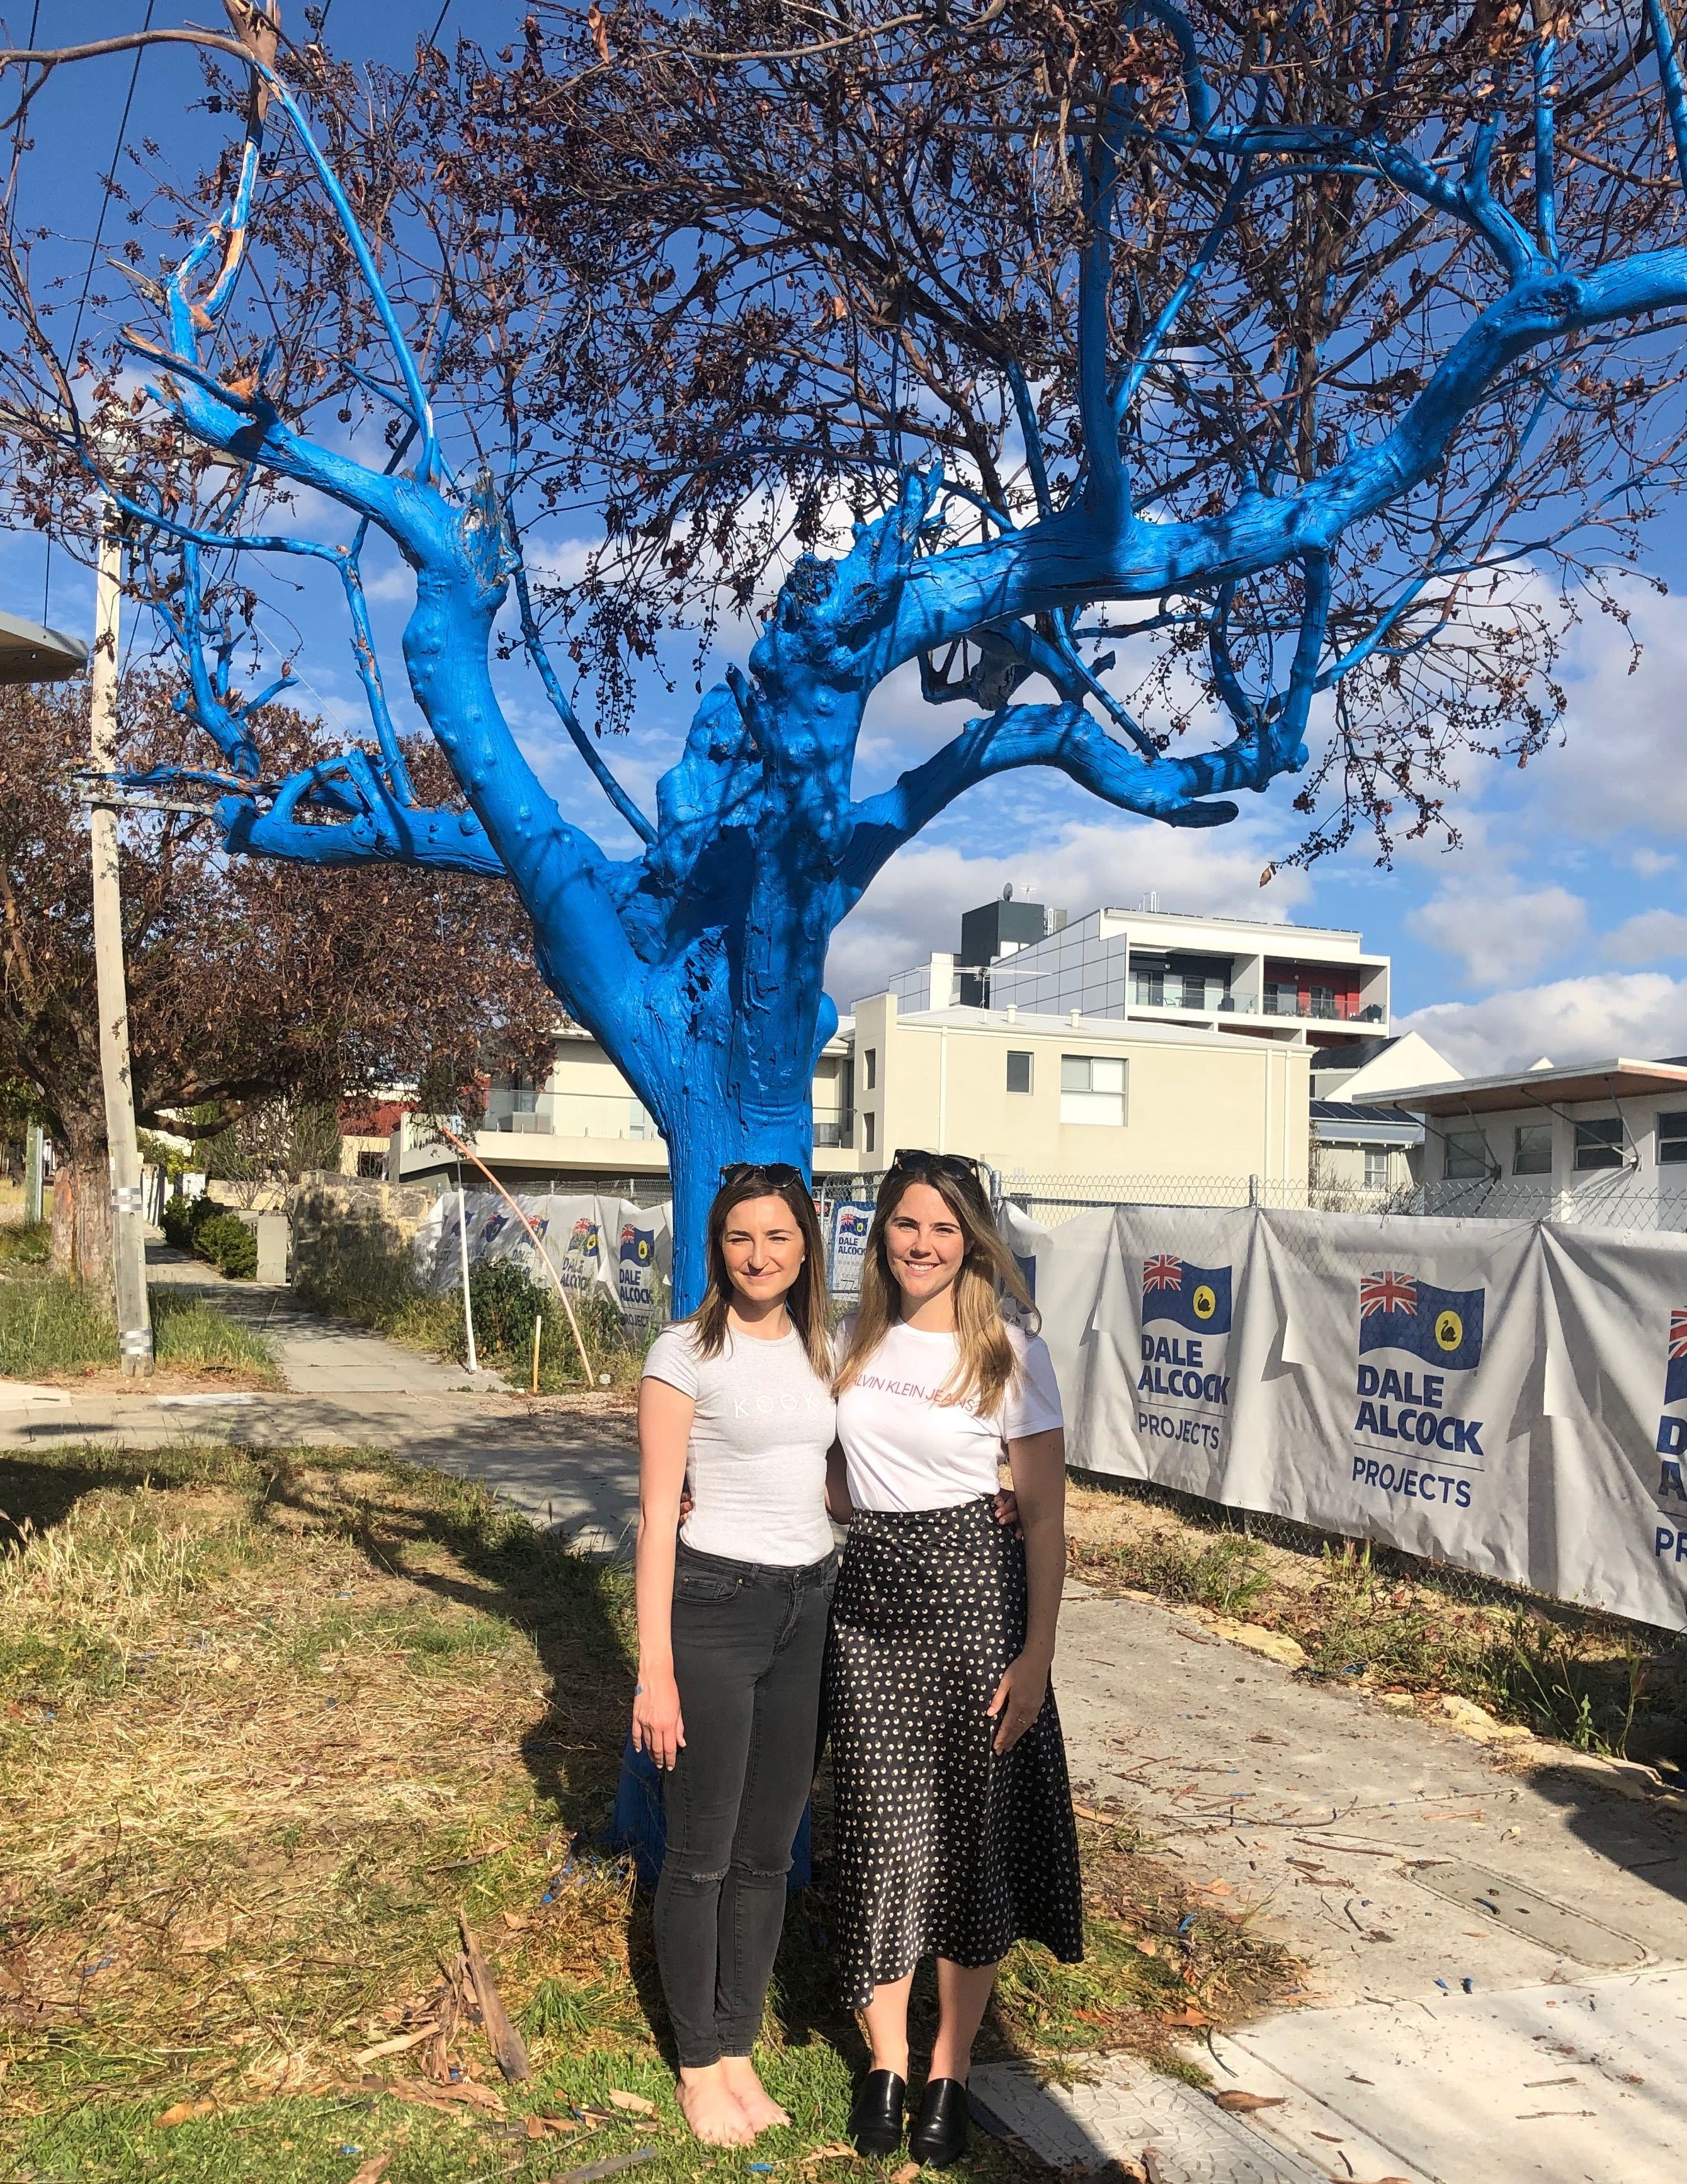 Metro Perth gets its first blue tree thanks to Marketforce and The Blue Tree Project